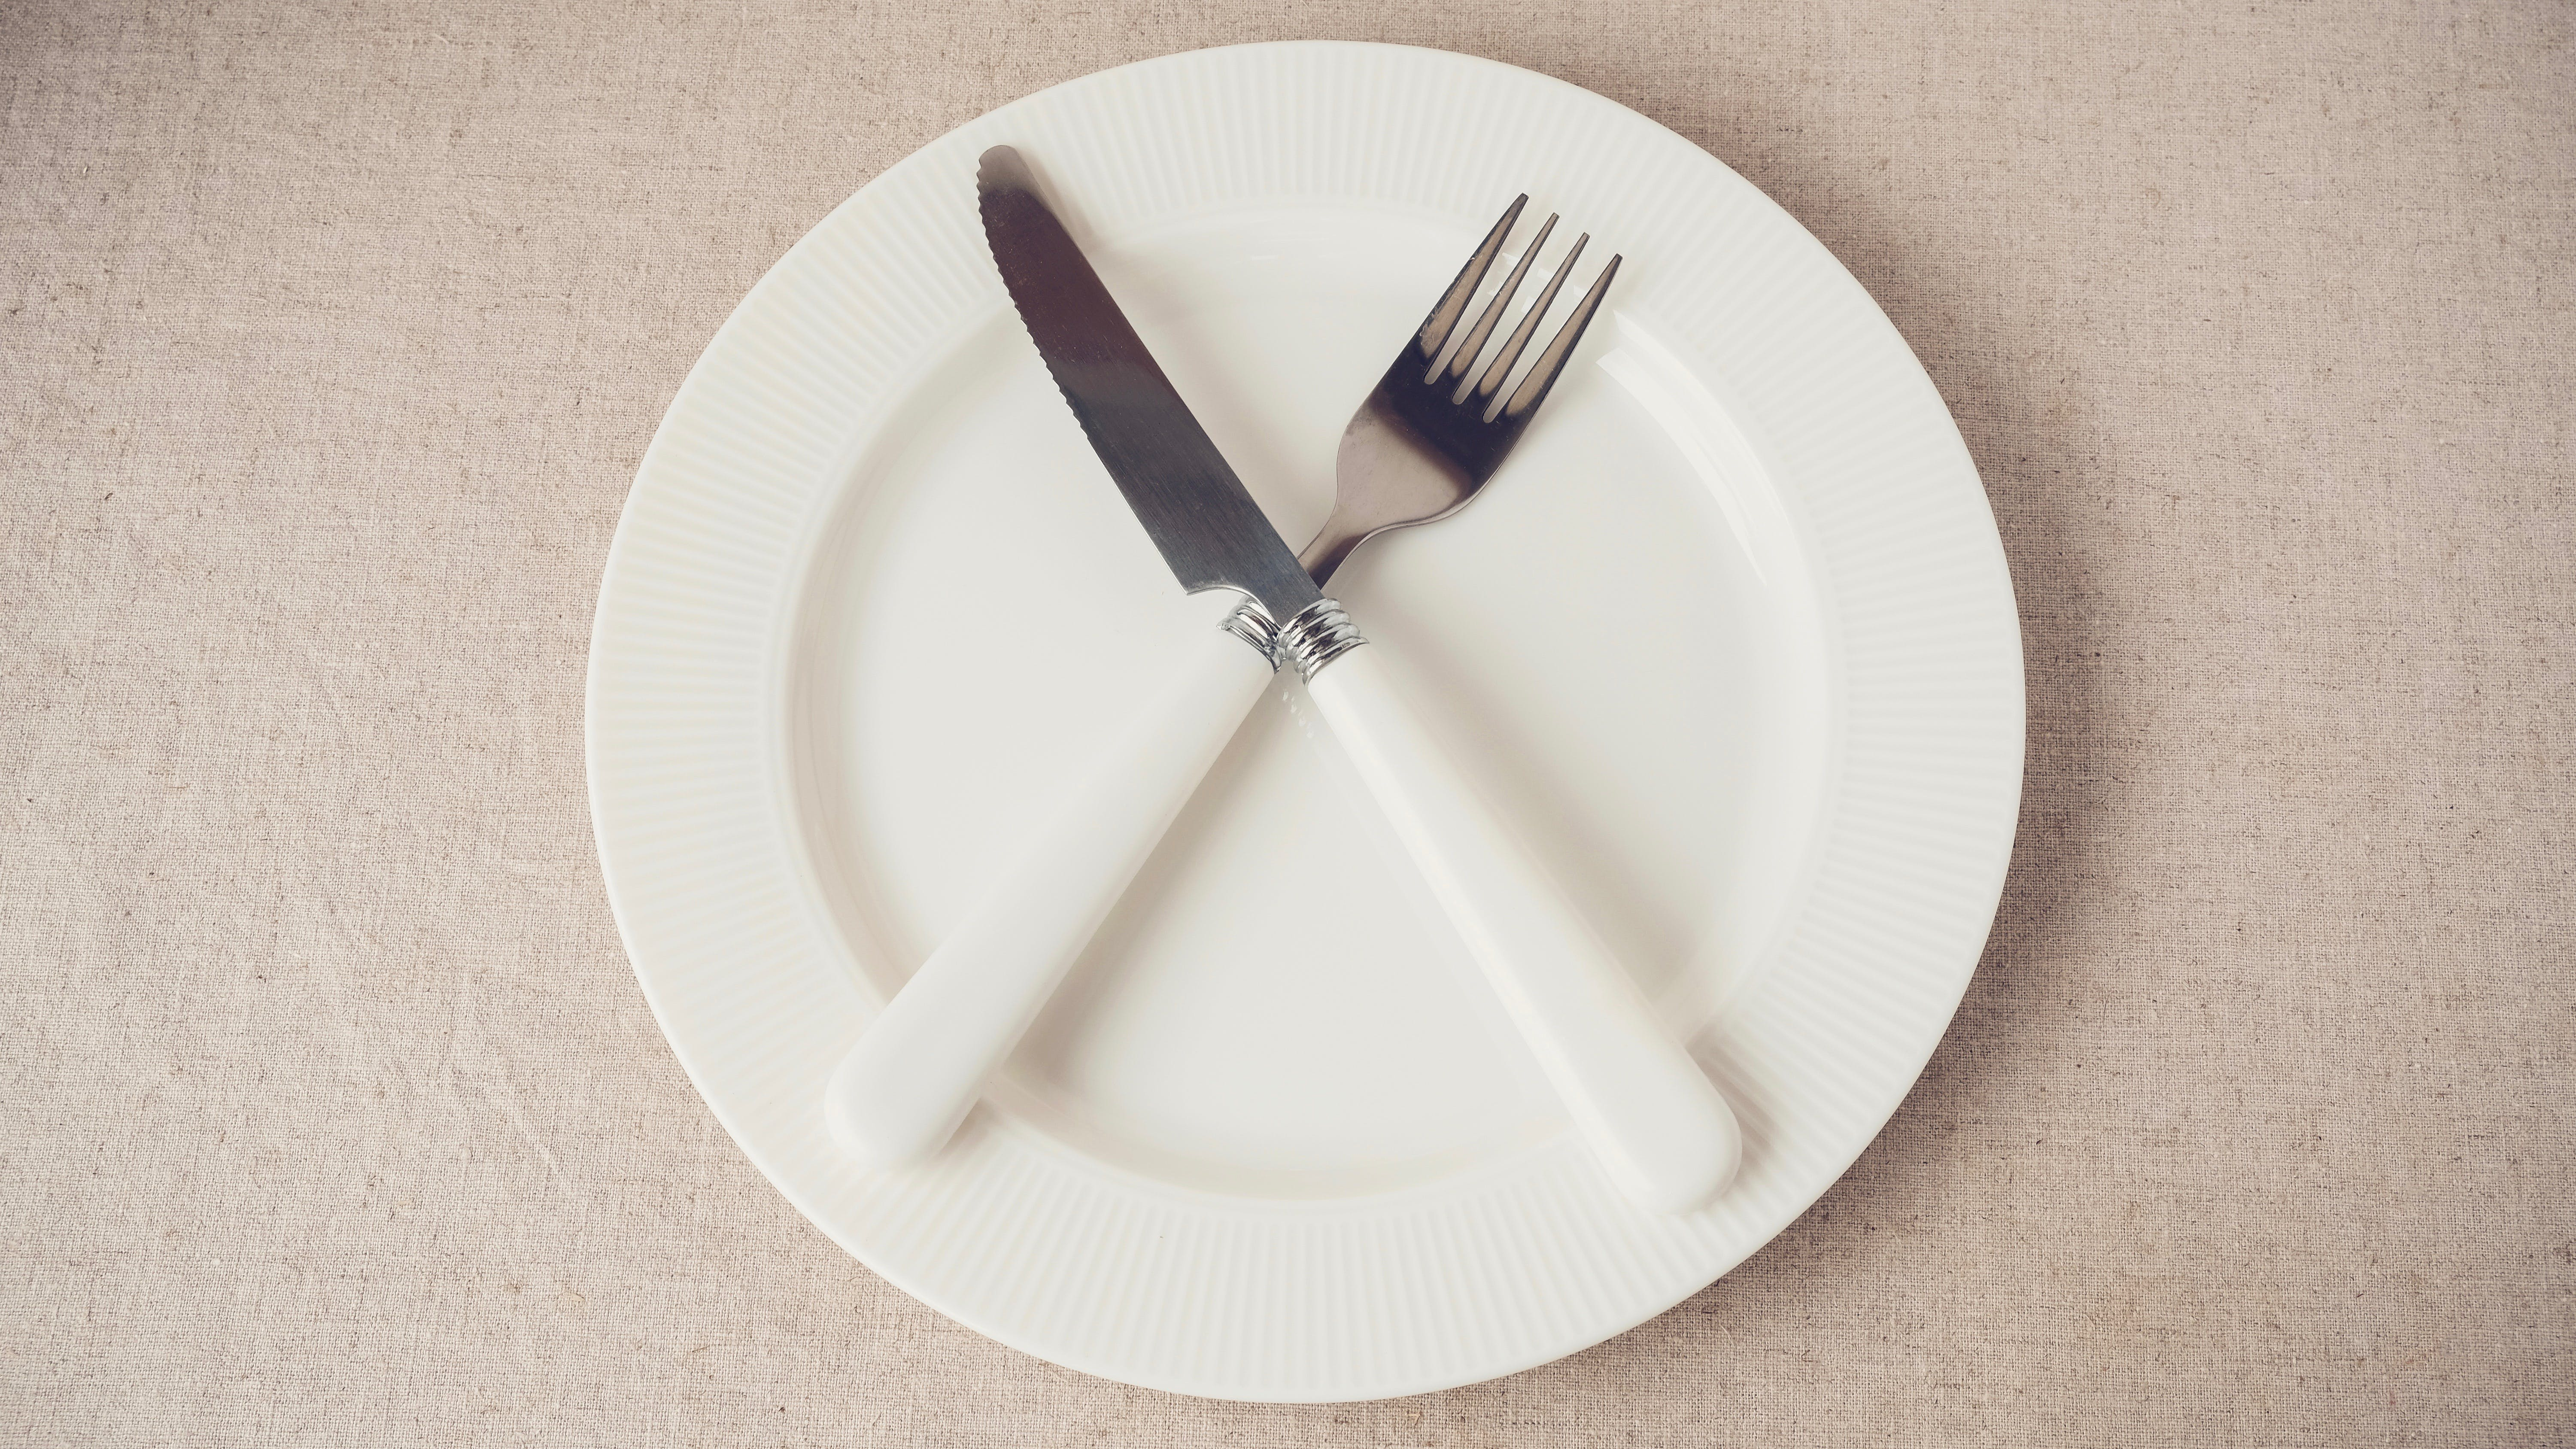 Does fasting burn muscle?